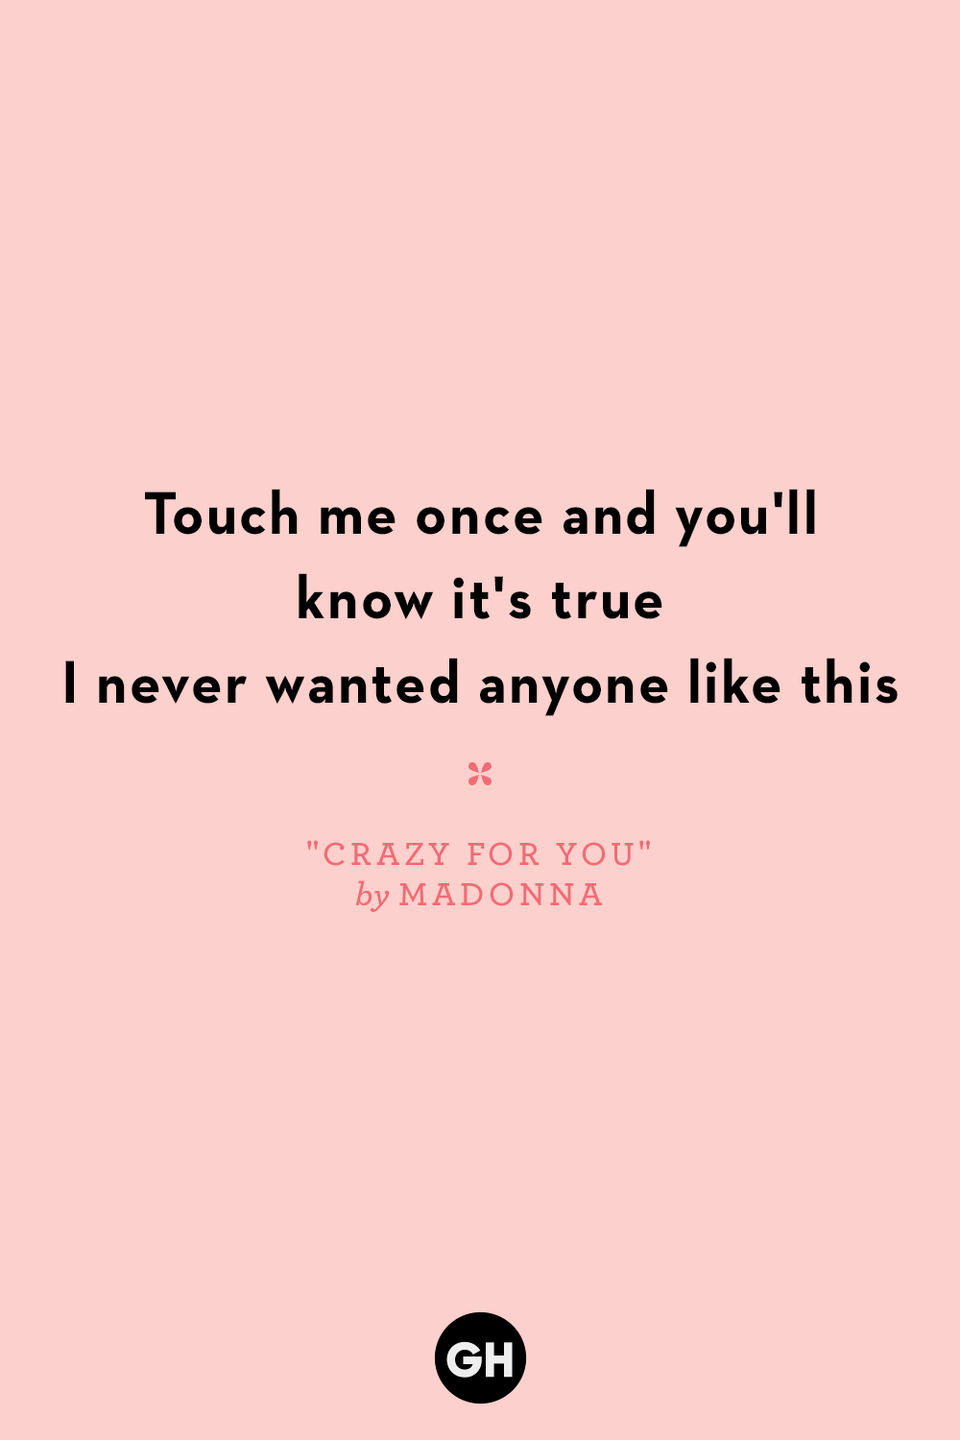 <p>Touch me once and you'll know it's true</p><p>I never wanted anyone like this</p>